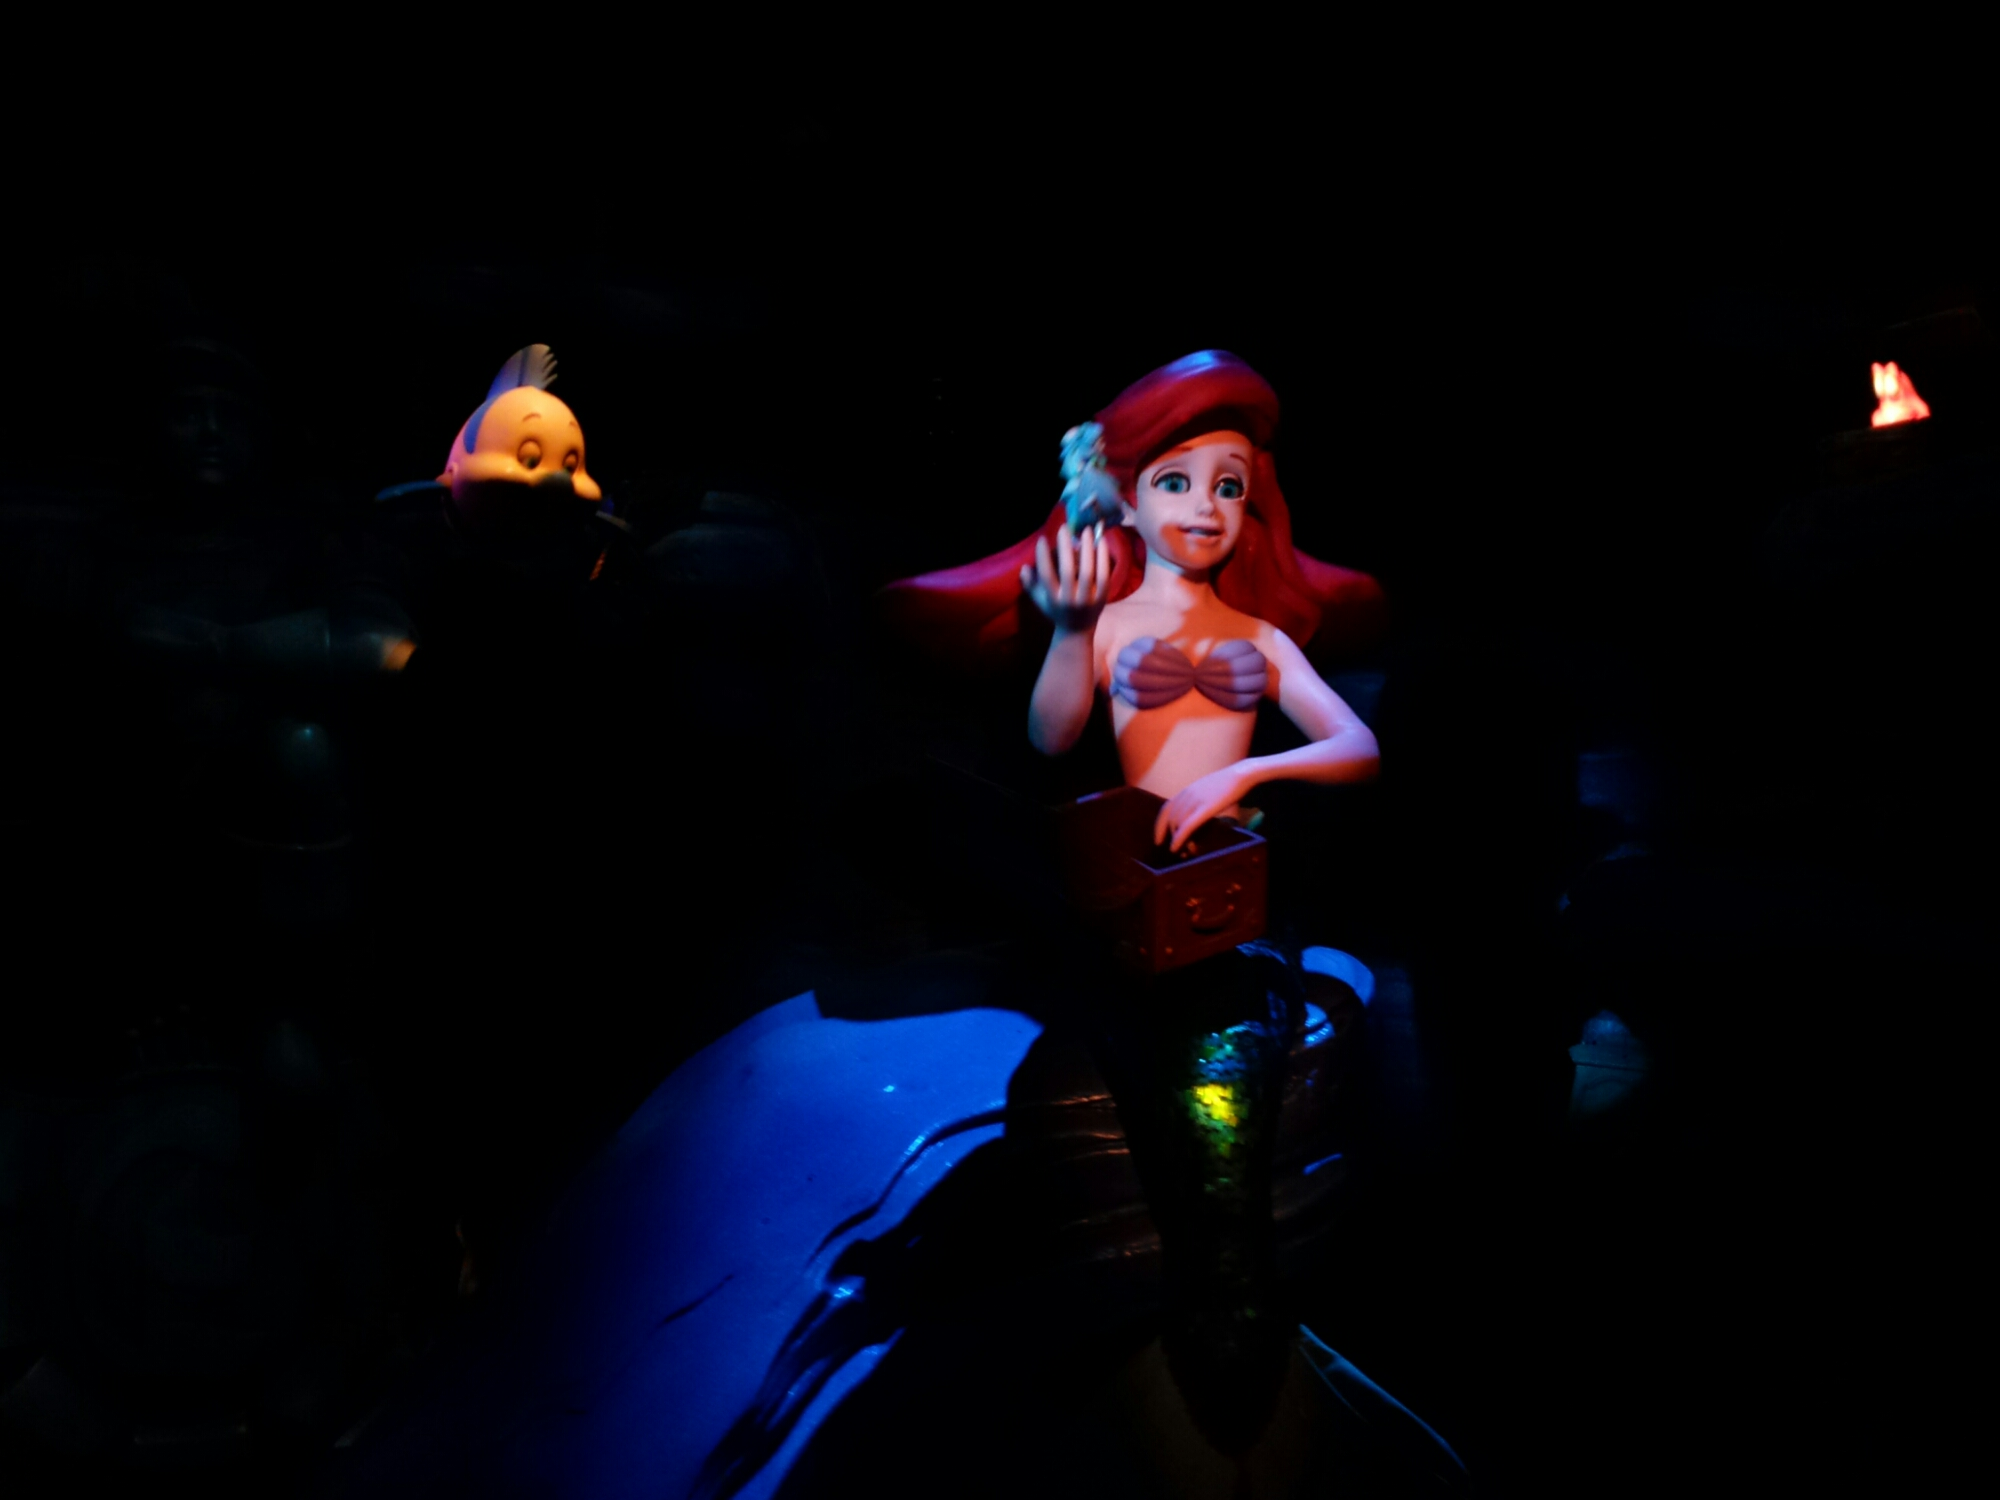 Ariel in the Part of Your World scene